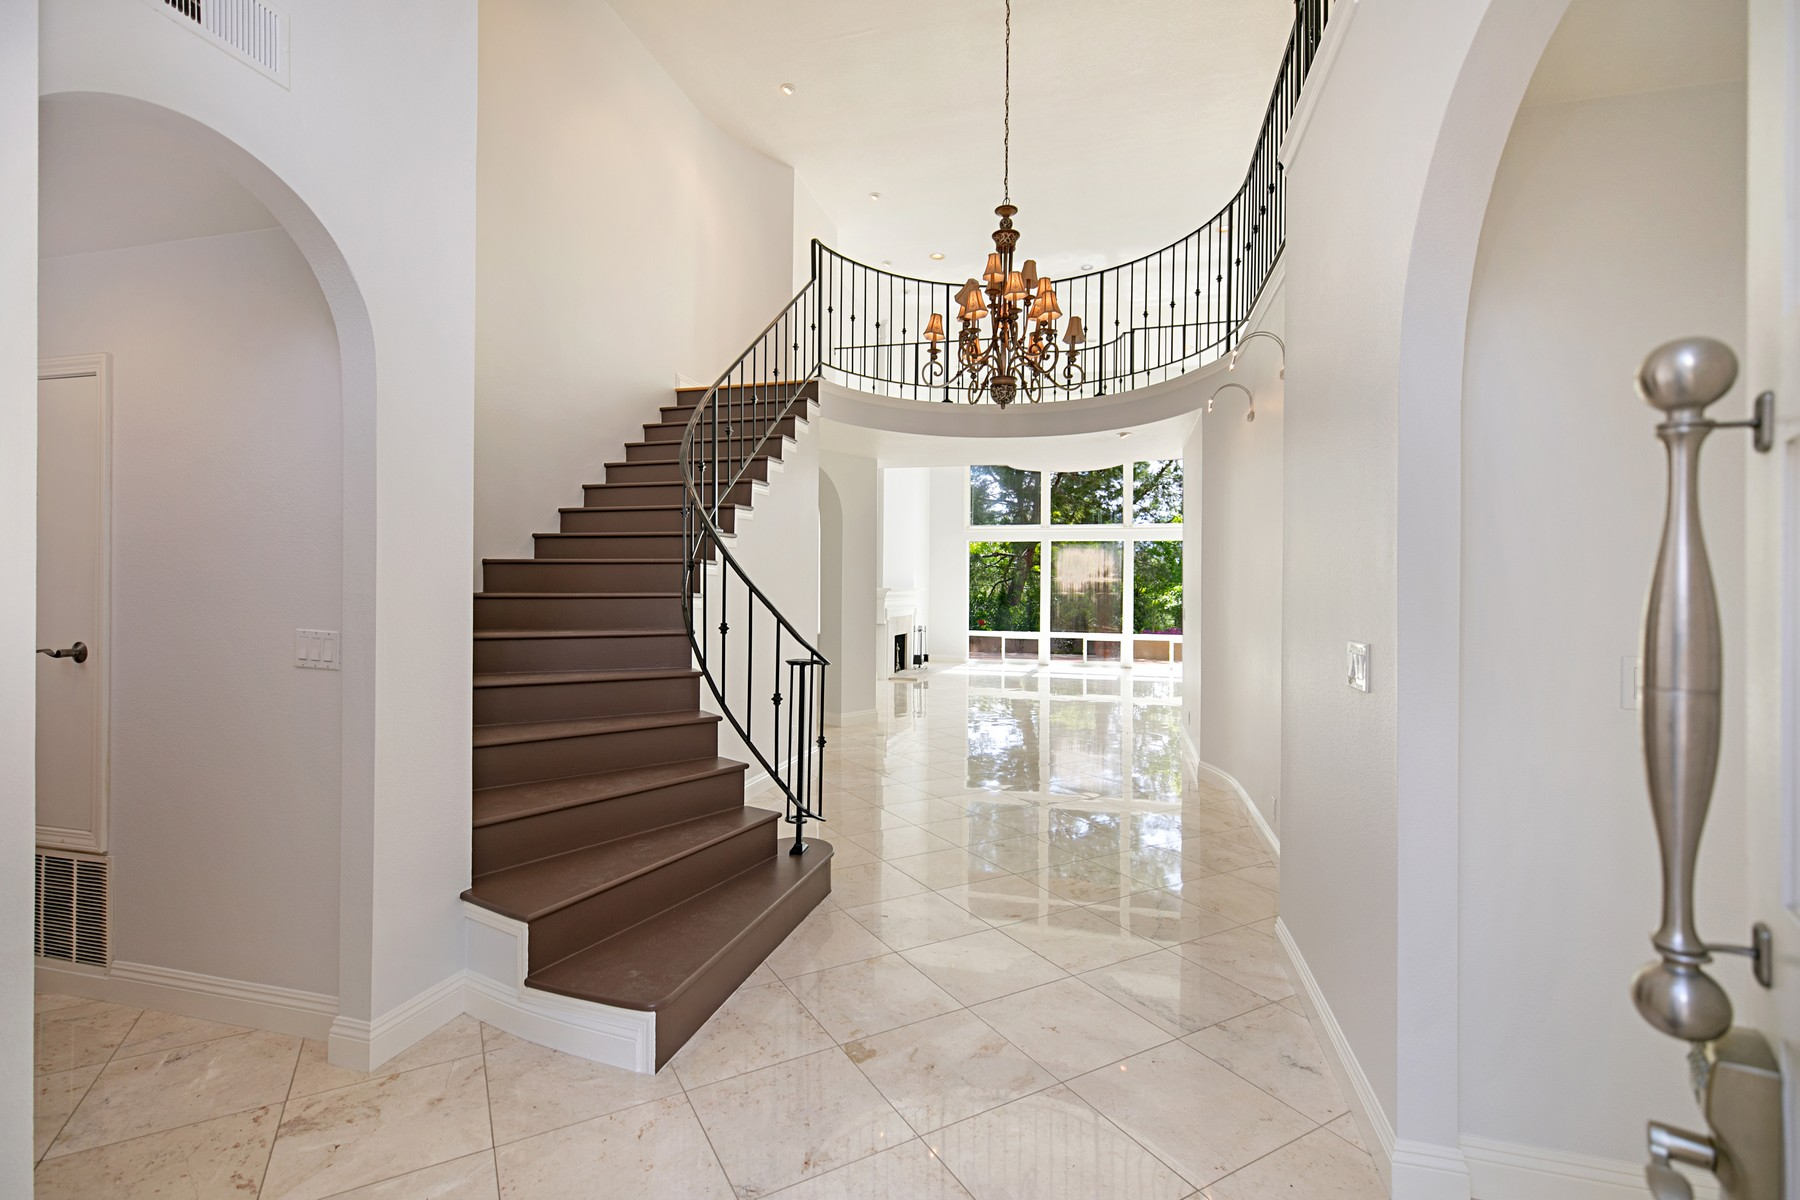 Single Family Homes for Active at 5 Rue Deauville Newport Beach, California 92660 United States